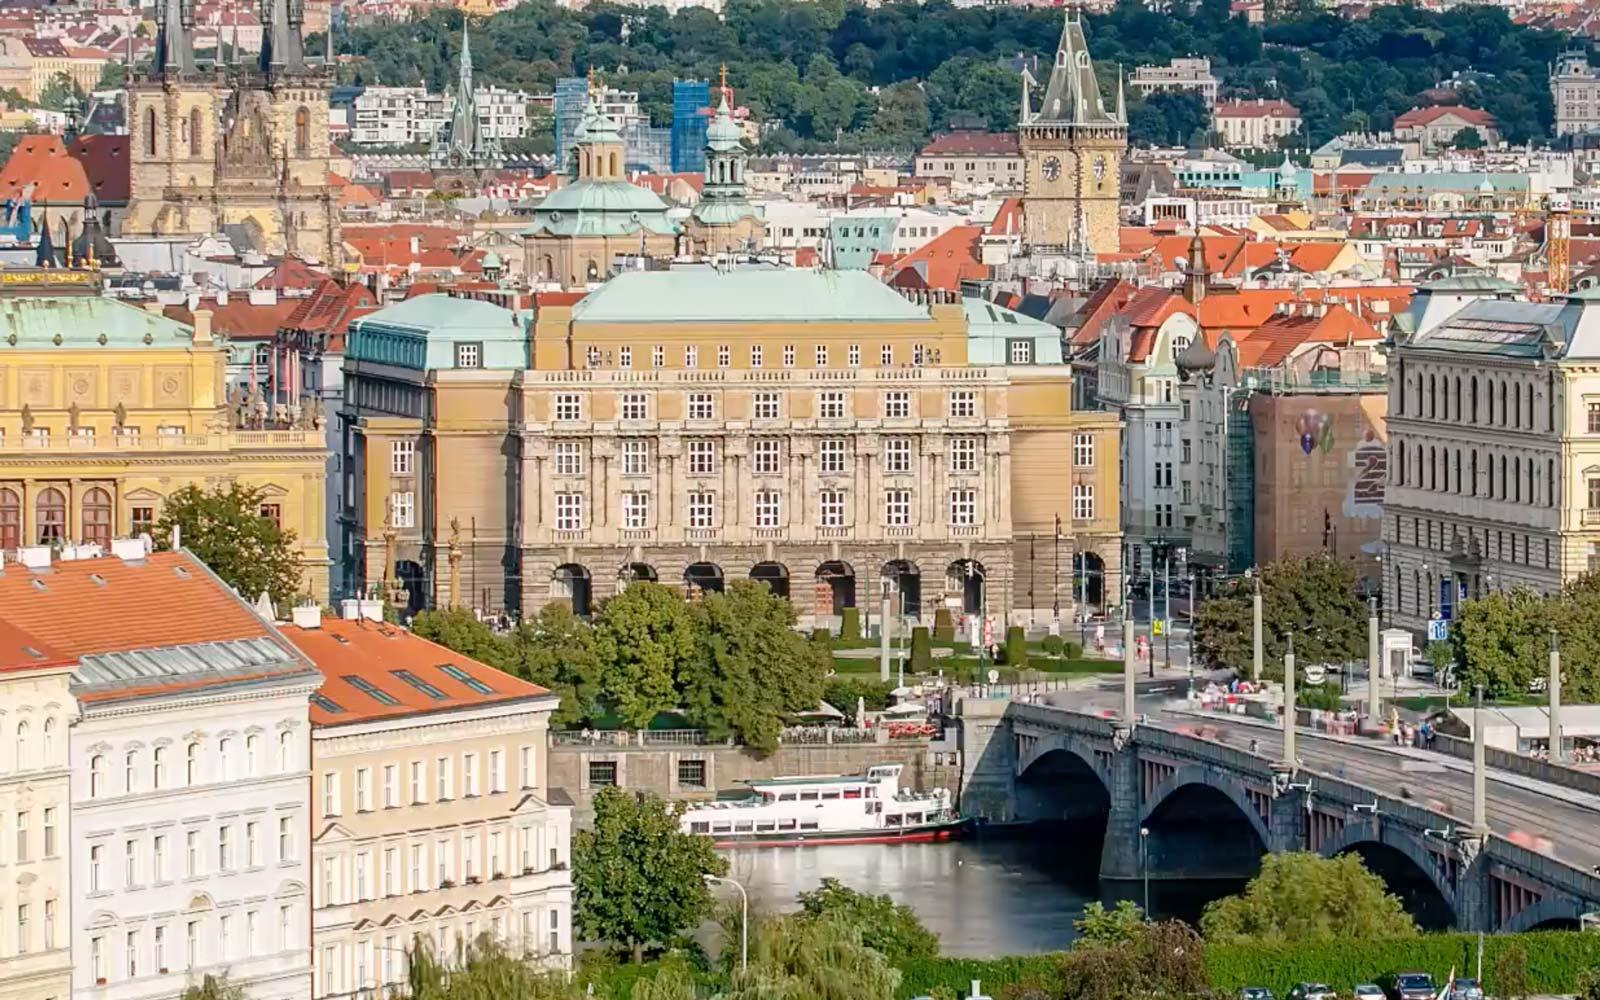 Wander Through the Streets of Prague With This Dreamy Hyperlapse Video